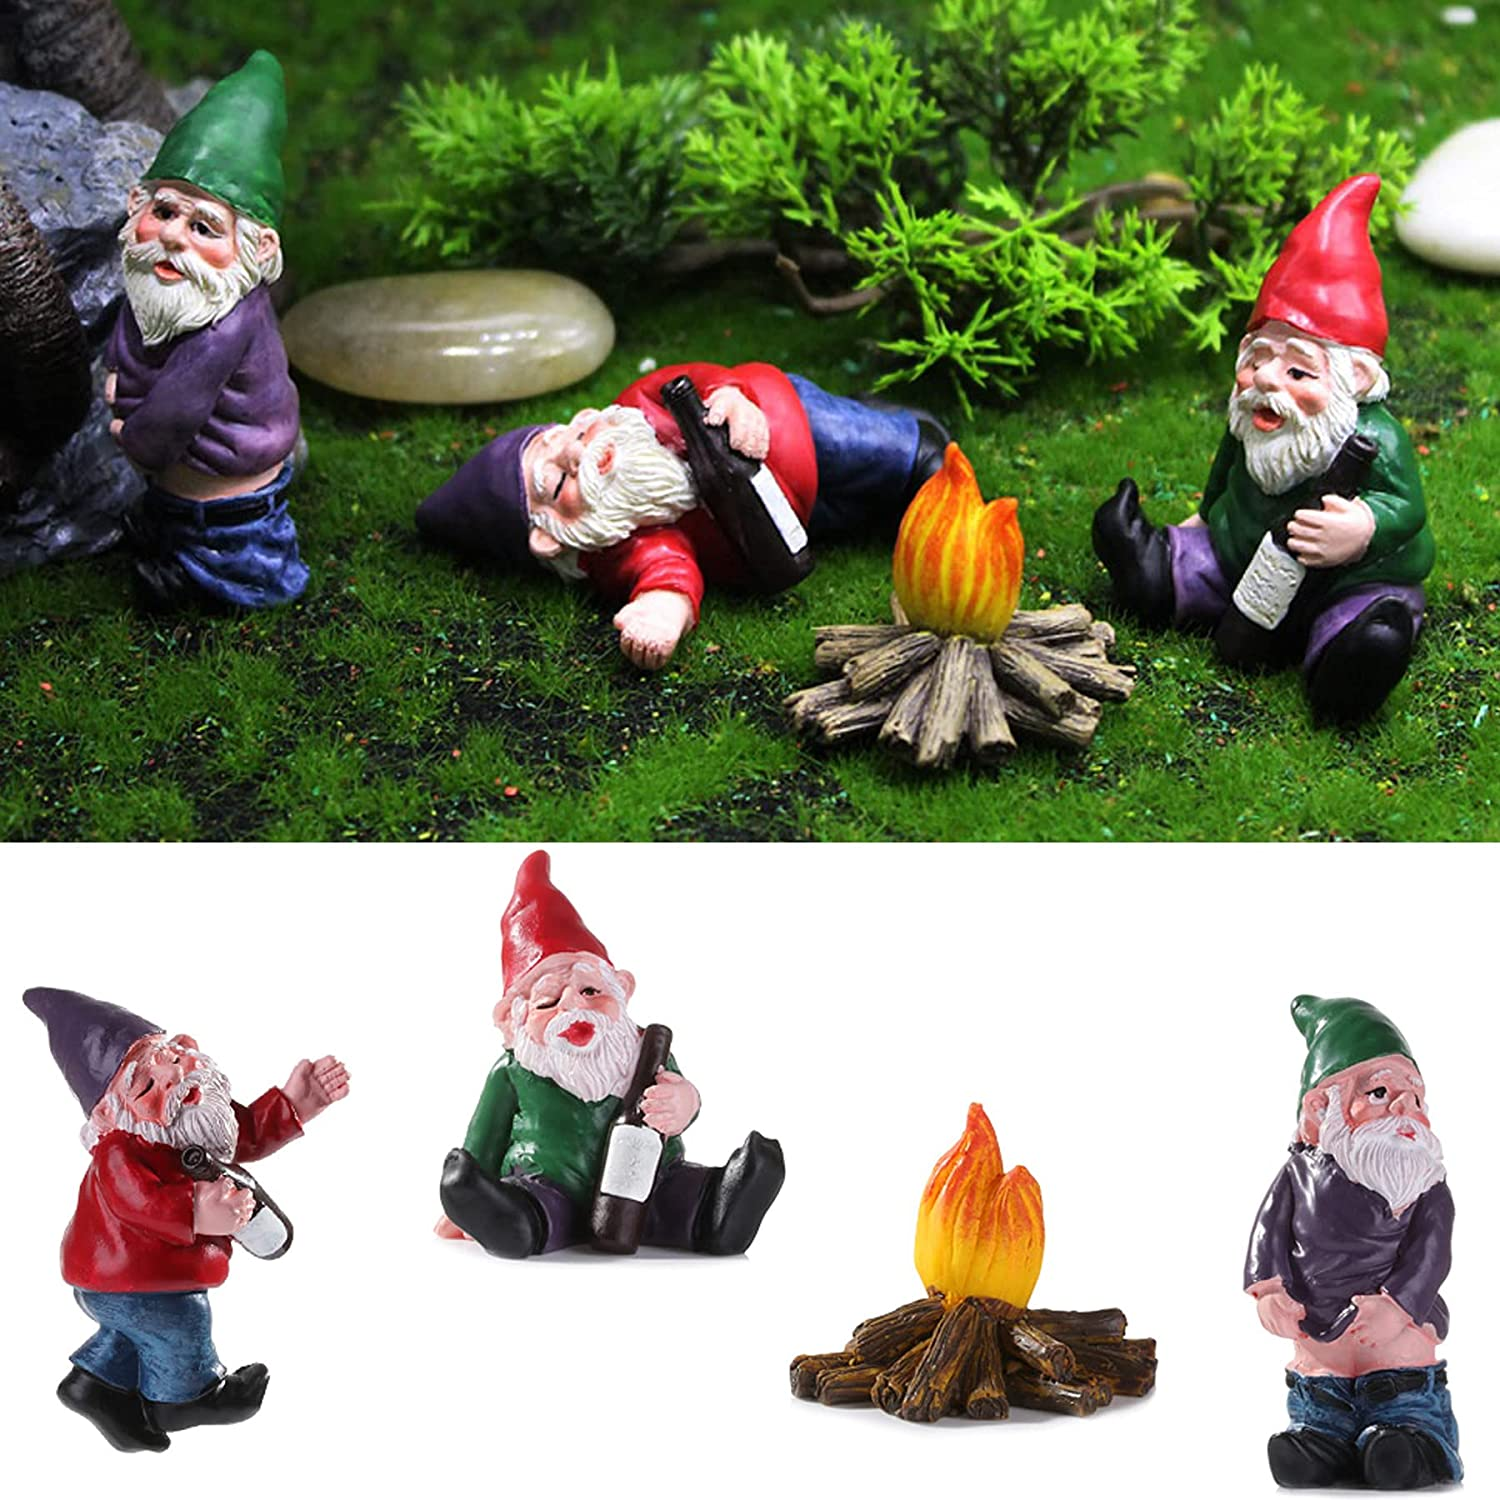 4pcs Fairy Garden Accessories Collectible Figurines Miniature Gardening Gnomes Figurines Ornaments My Little Friend Gnome - Drunk Gnomes Kit offor Fairy Garden (Drunk Gnomes-4)